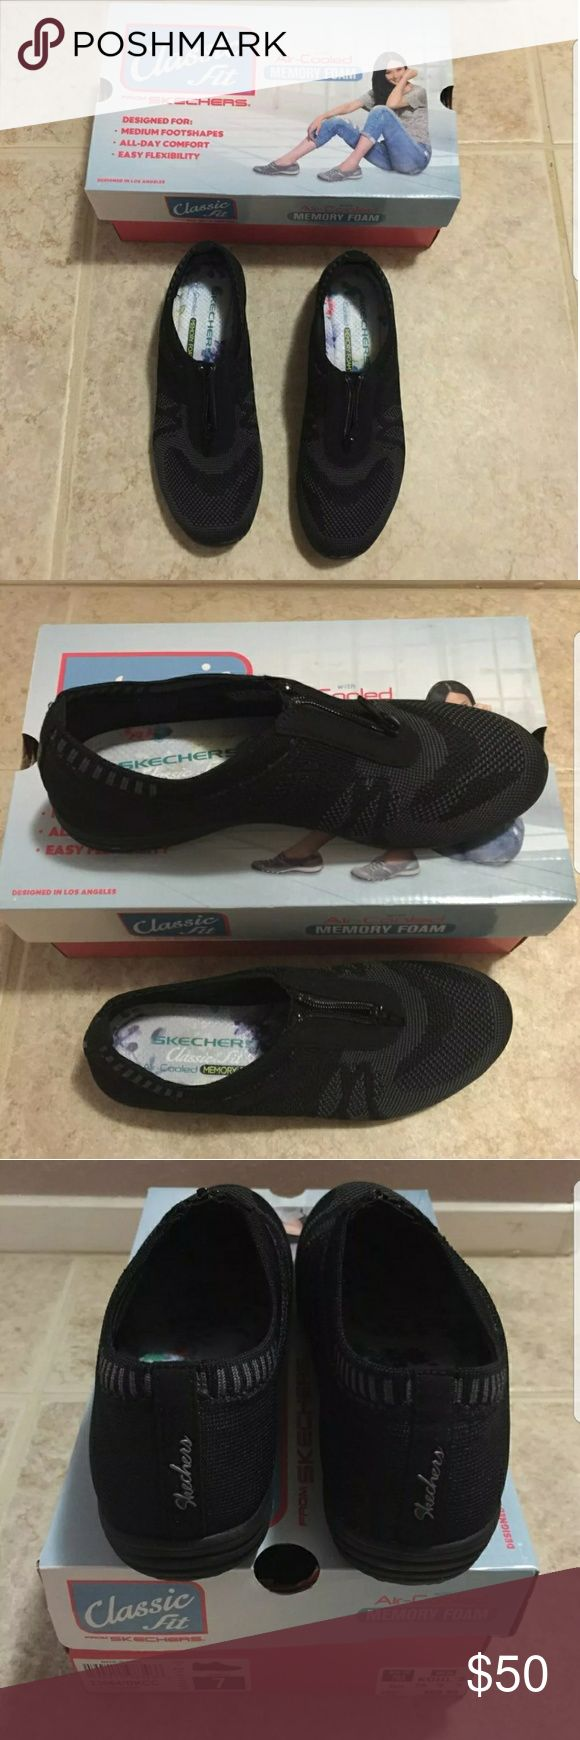 Skechers Classic Fit Brand new Comes with original box Size 7 Air cooled memory foam Black Zipper on top Skechers Shoes Flats & Loafers